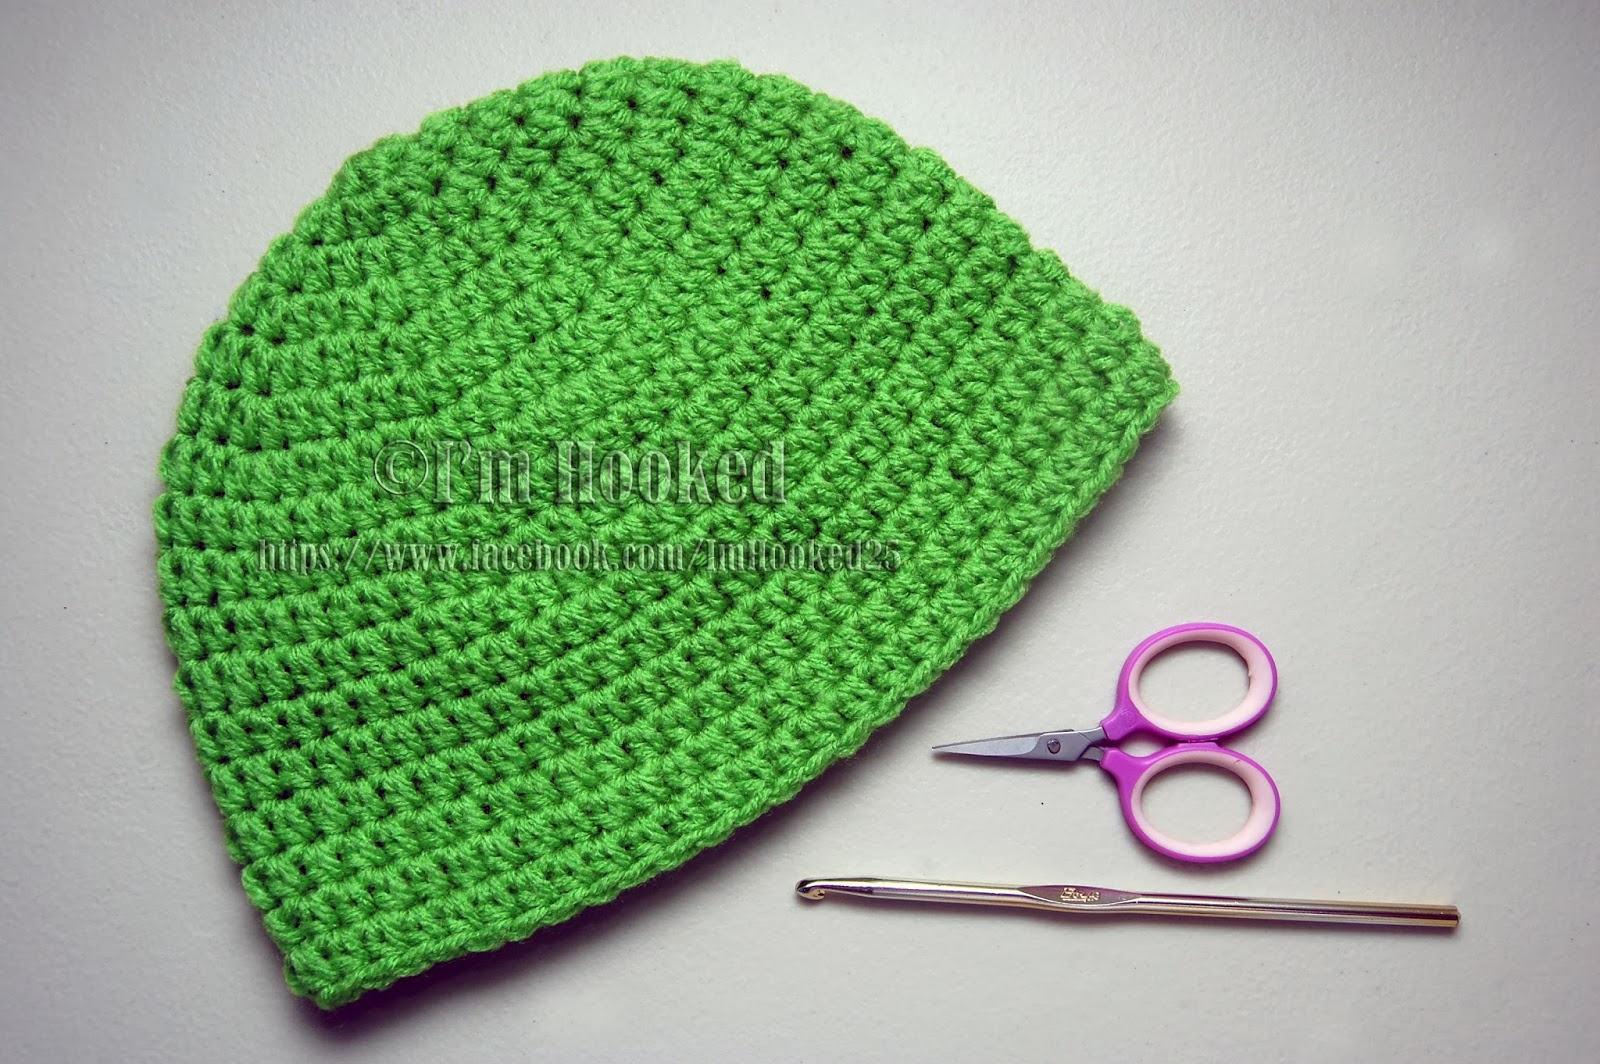 Crochet Pattern Hat Beanie : Crochet Treasures: Basic Beanie (Half Double Crochet)